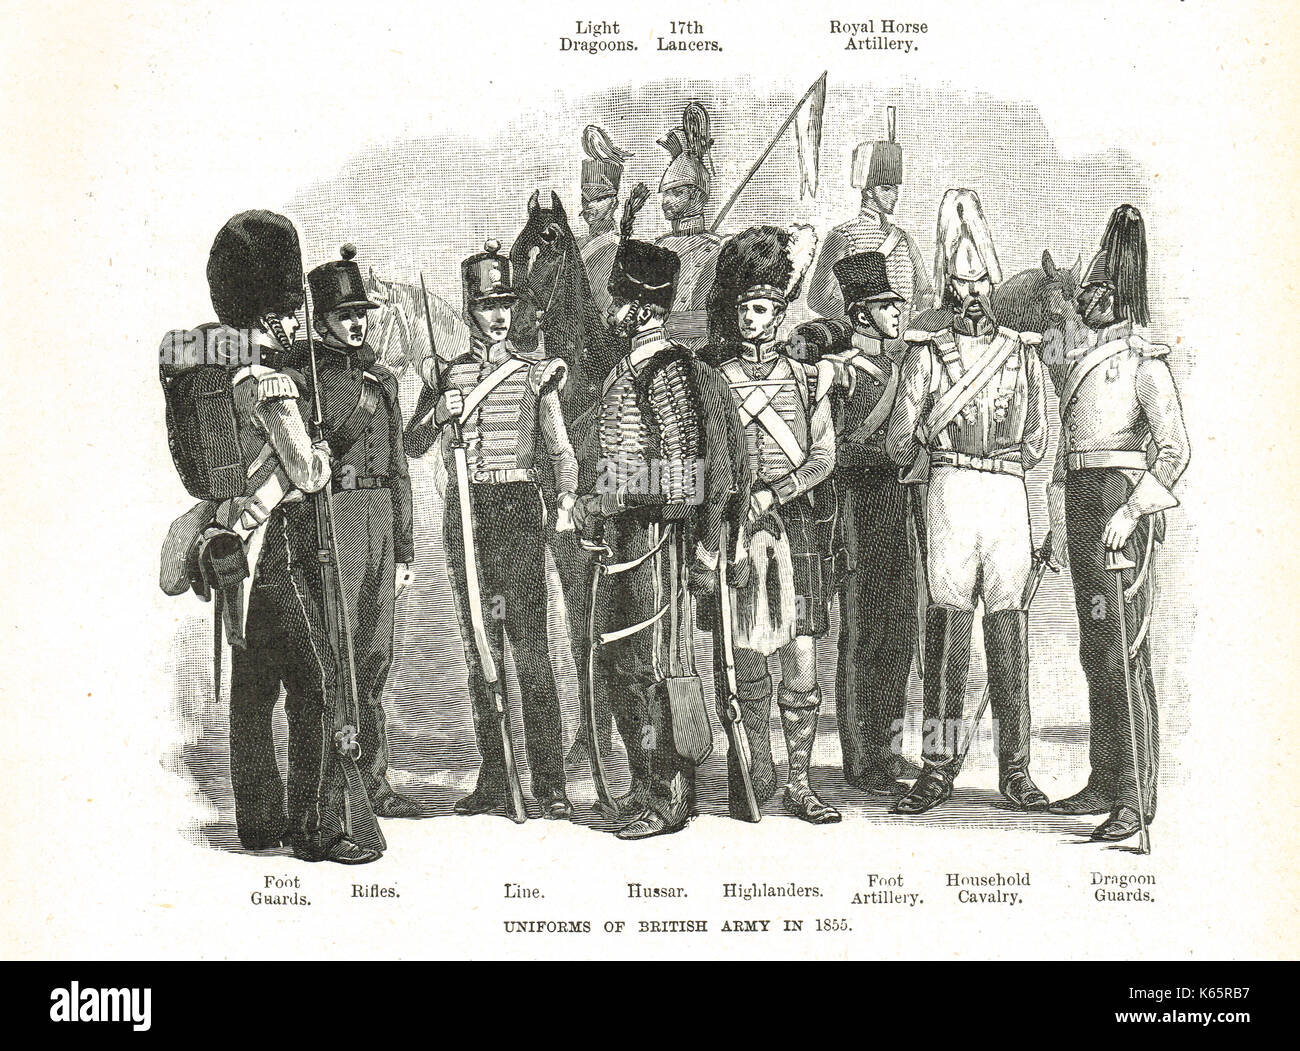 British Army uniforms of 1855 - Stock Image